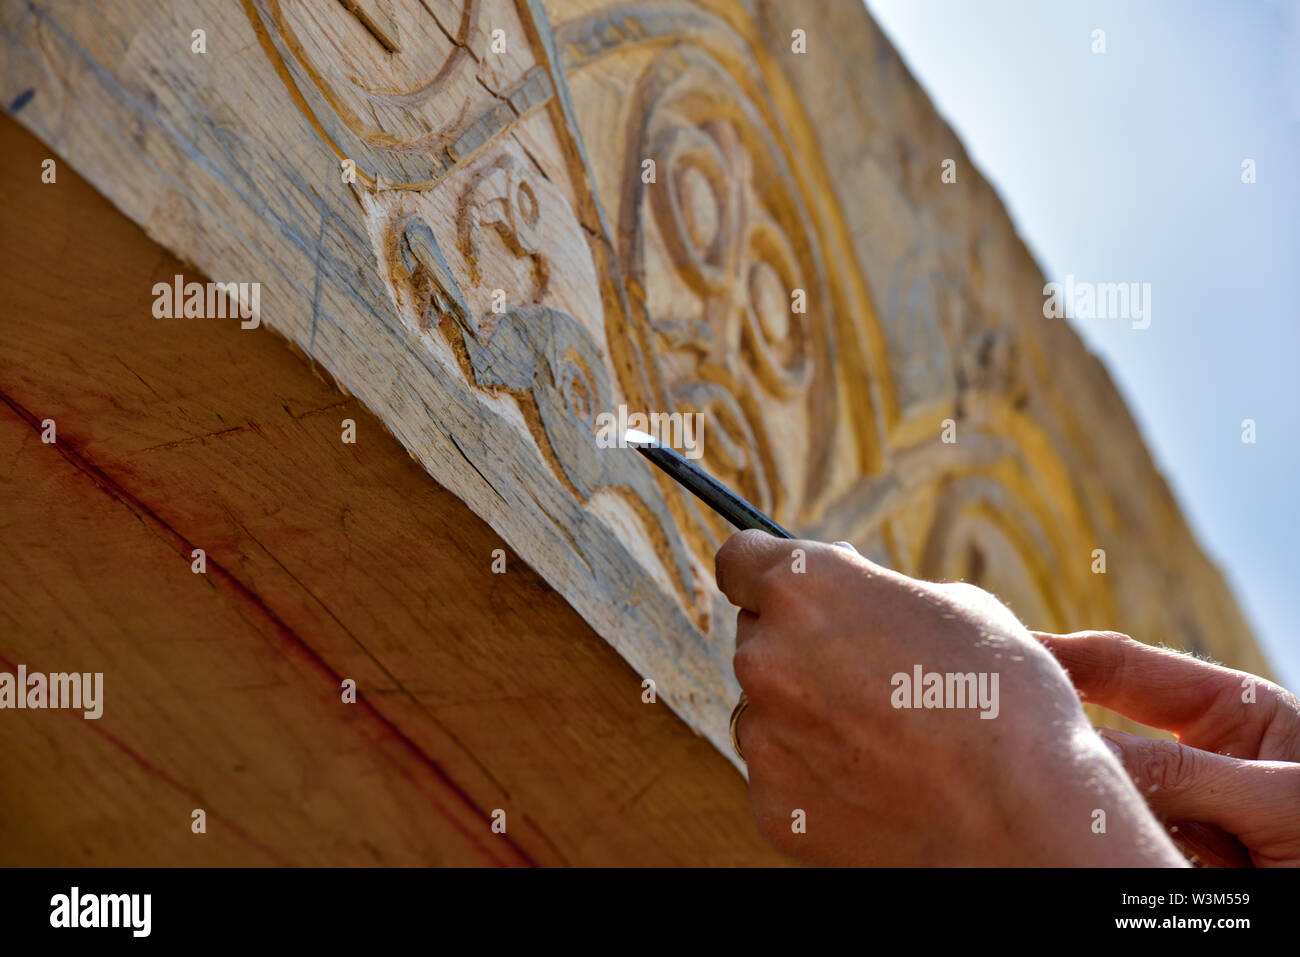 Carving motif into oak beam on traditional reconstruction of medieval timber framed hall - Stock Image